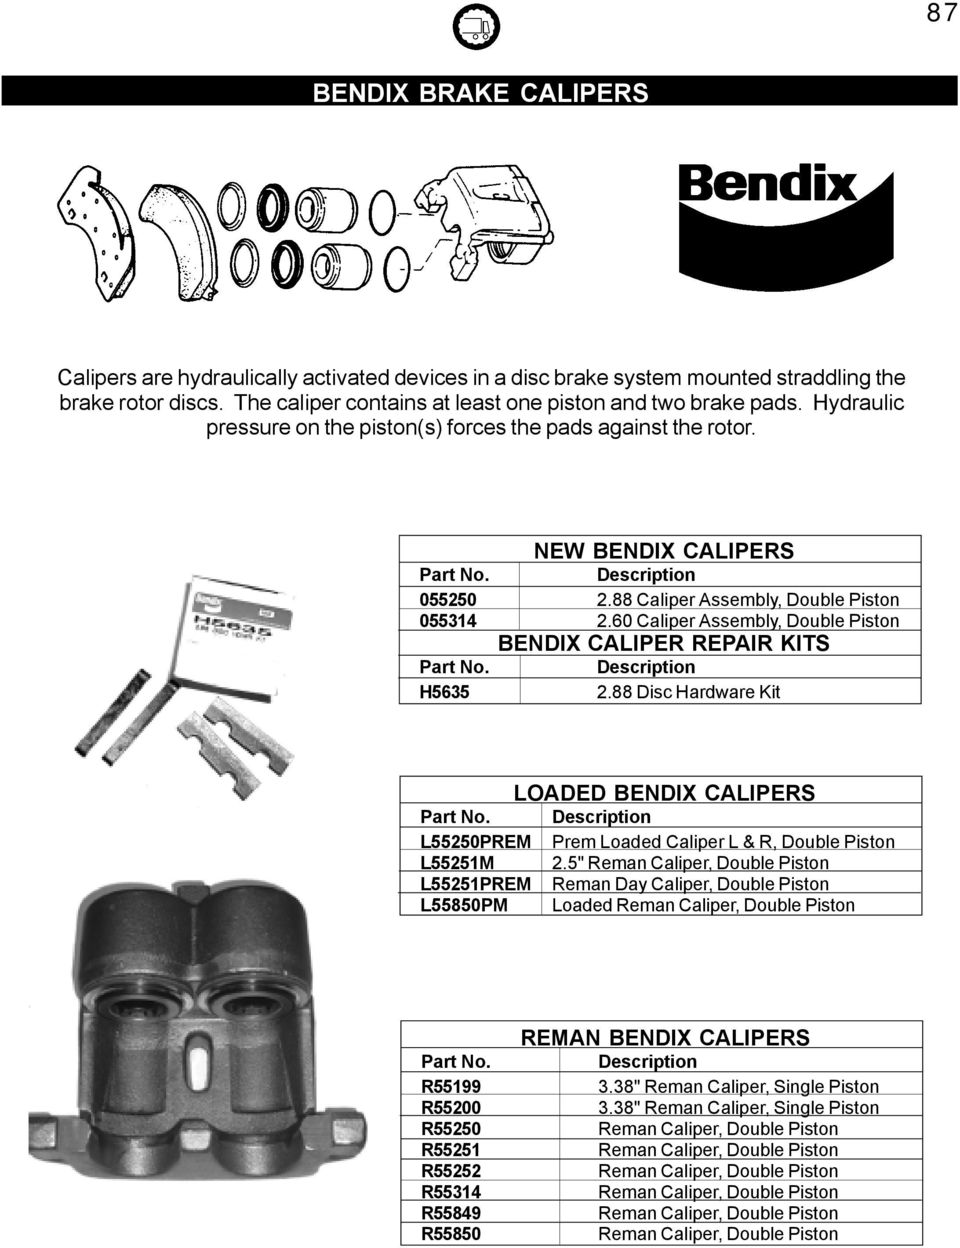 Cast Spoke Wheels Trailer Complete With Brake Wilwood Disc Kitfront Stock Replacementhonda262mm Rotors 88 Caliper Assembly Double Piston 055314 260 Bendix Repair